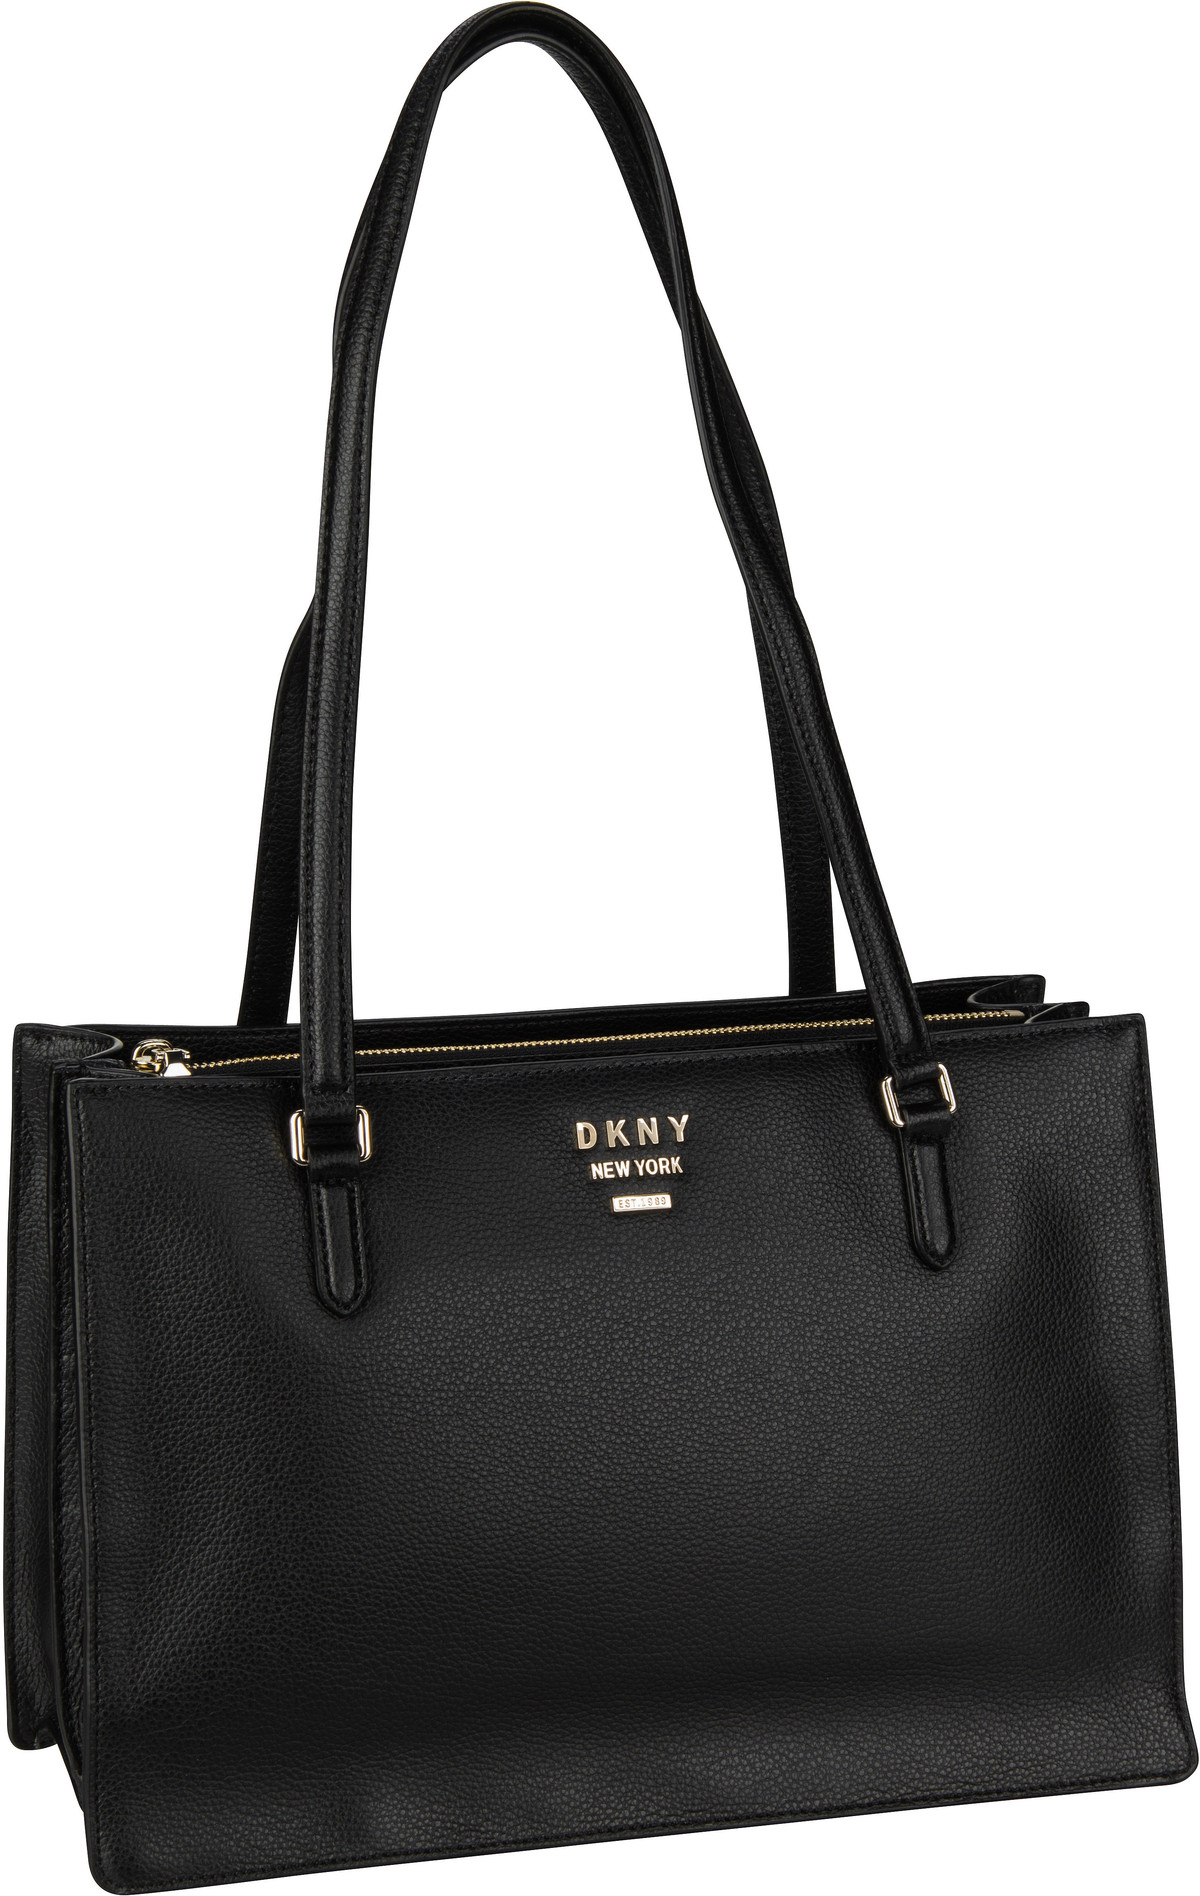 Handtasche Whitney Large Center Zip Tote Black/Gold